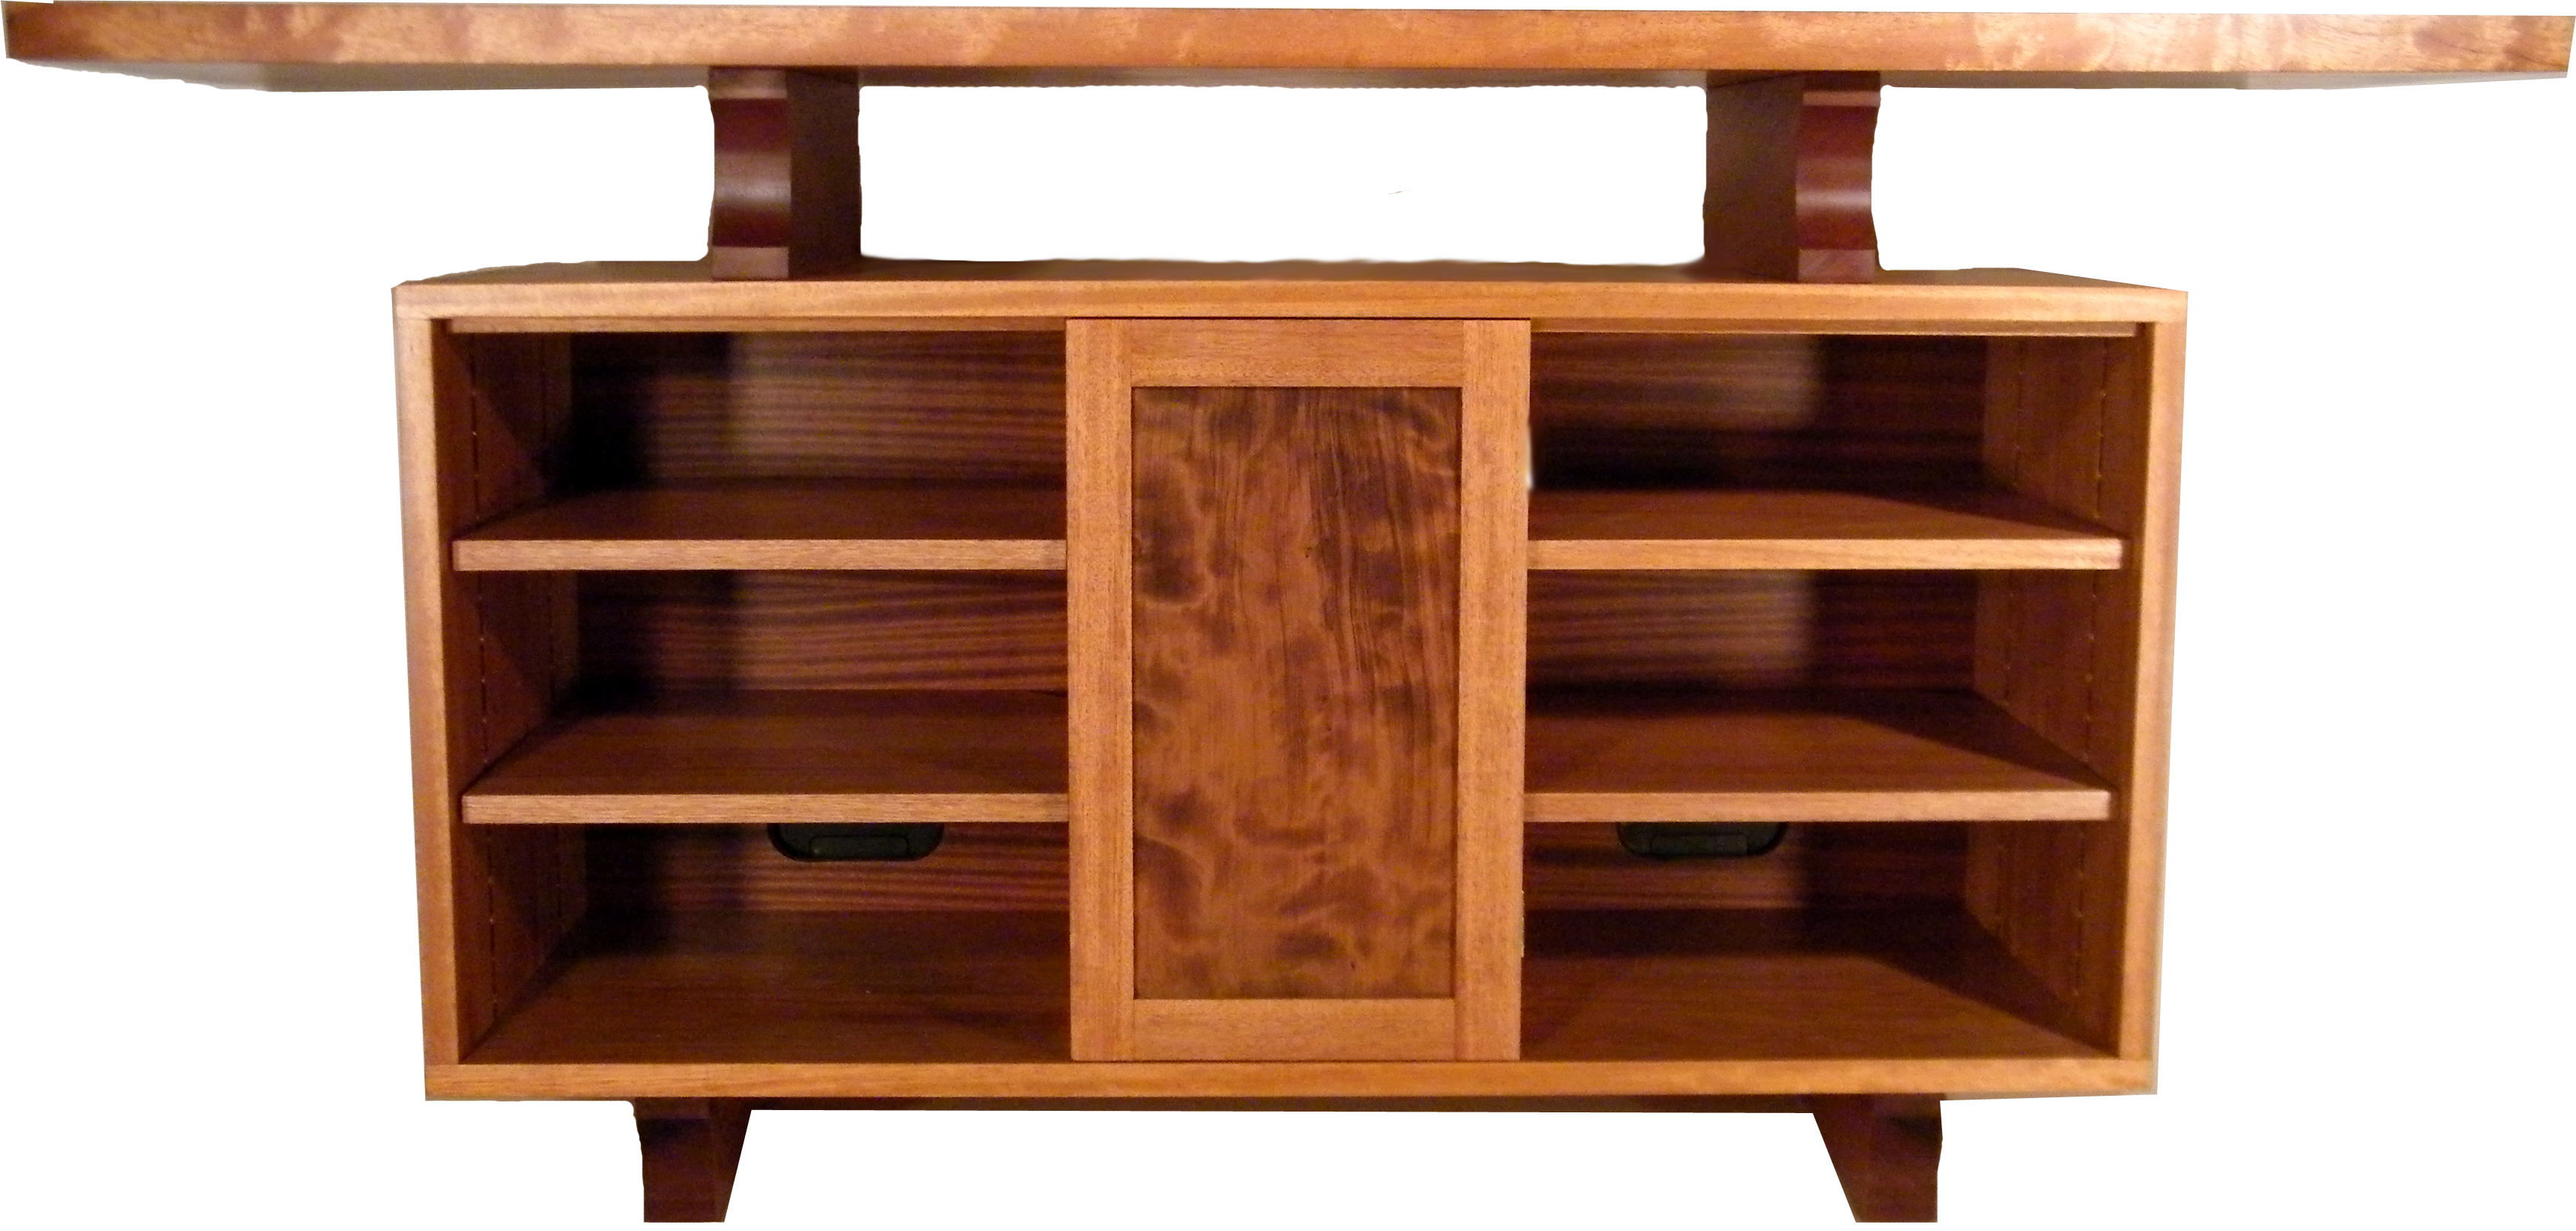 Custom Made Wood Furniture Home Entertainment Centers And Cabinets